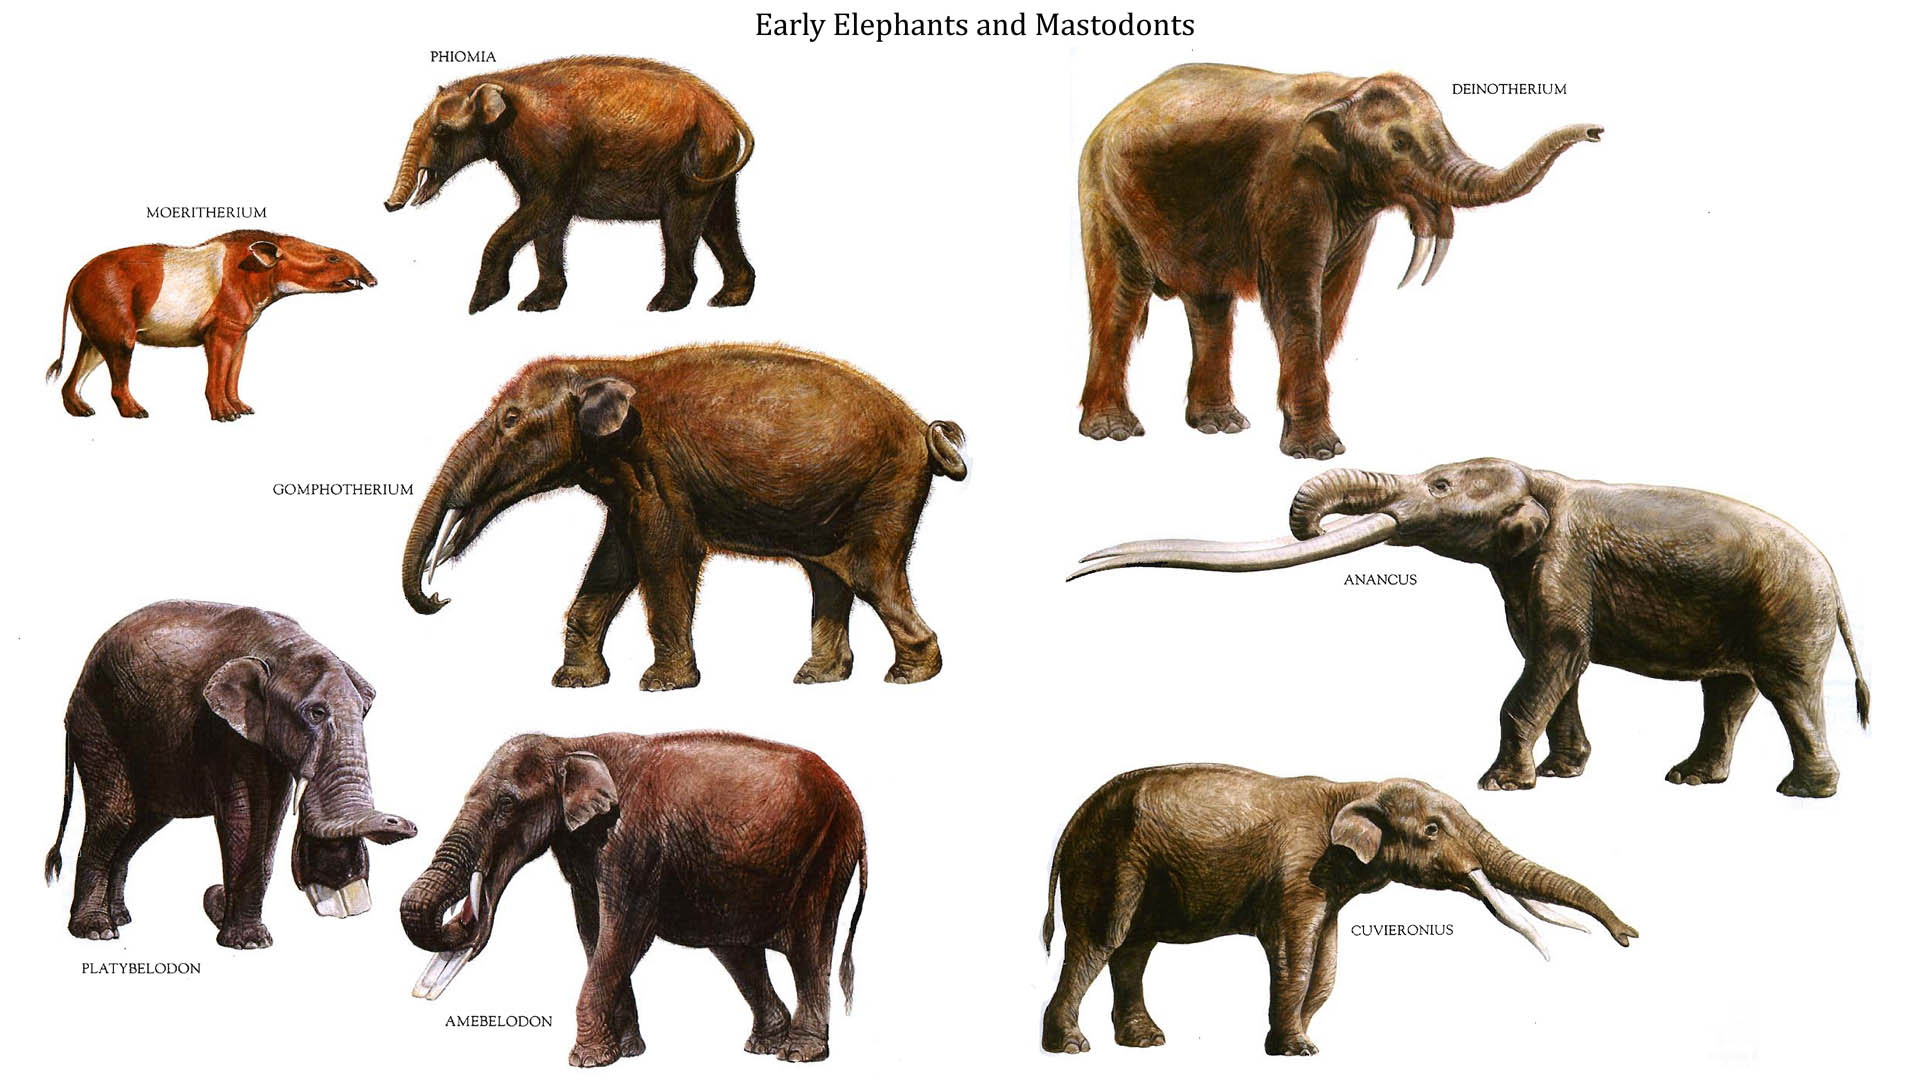 Early Elephants and Mastodonts